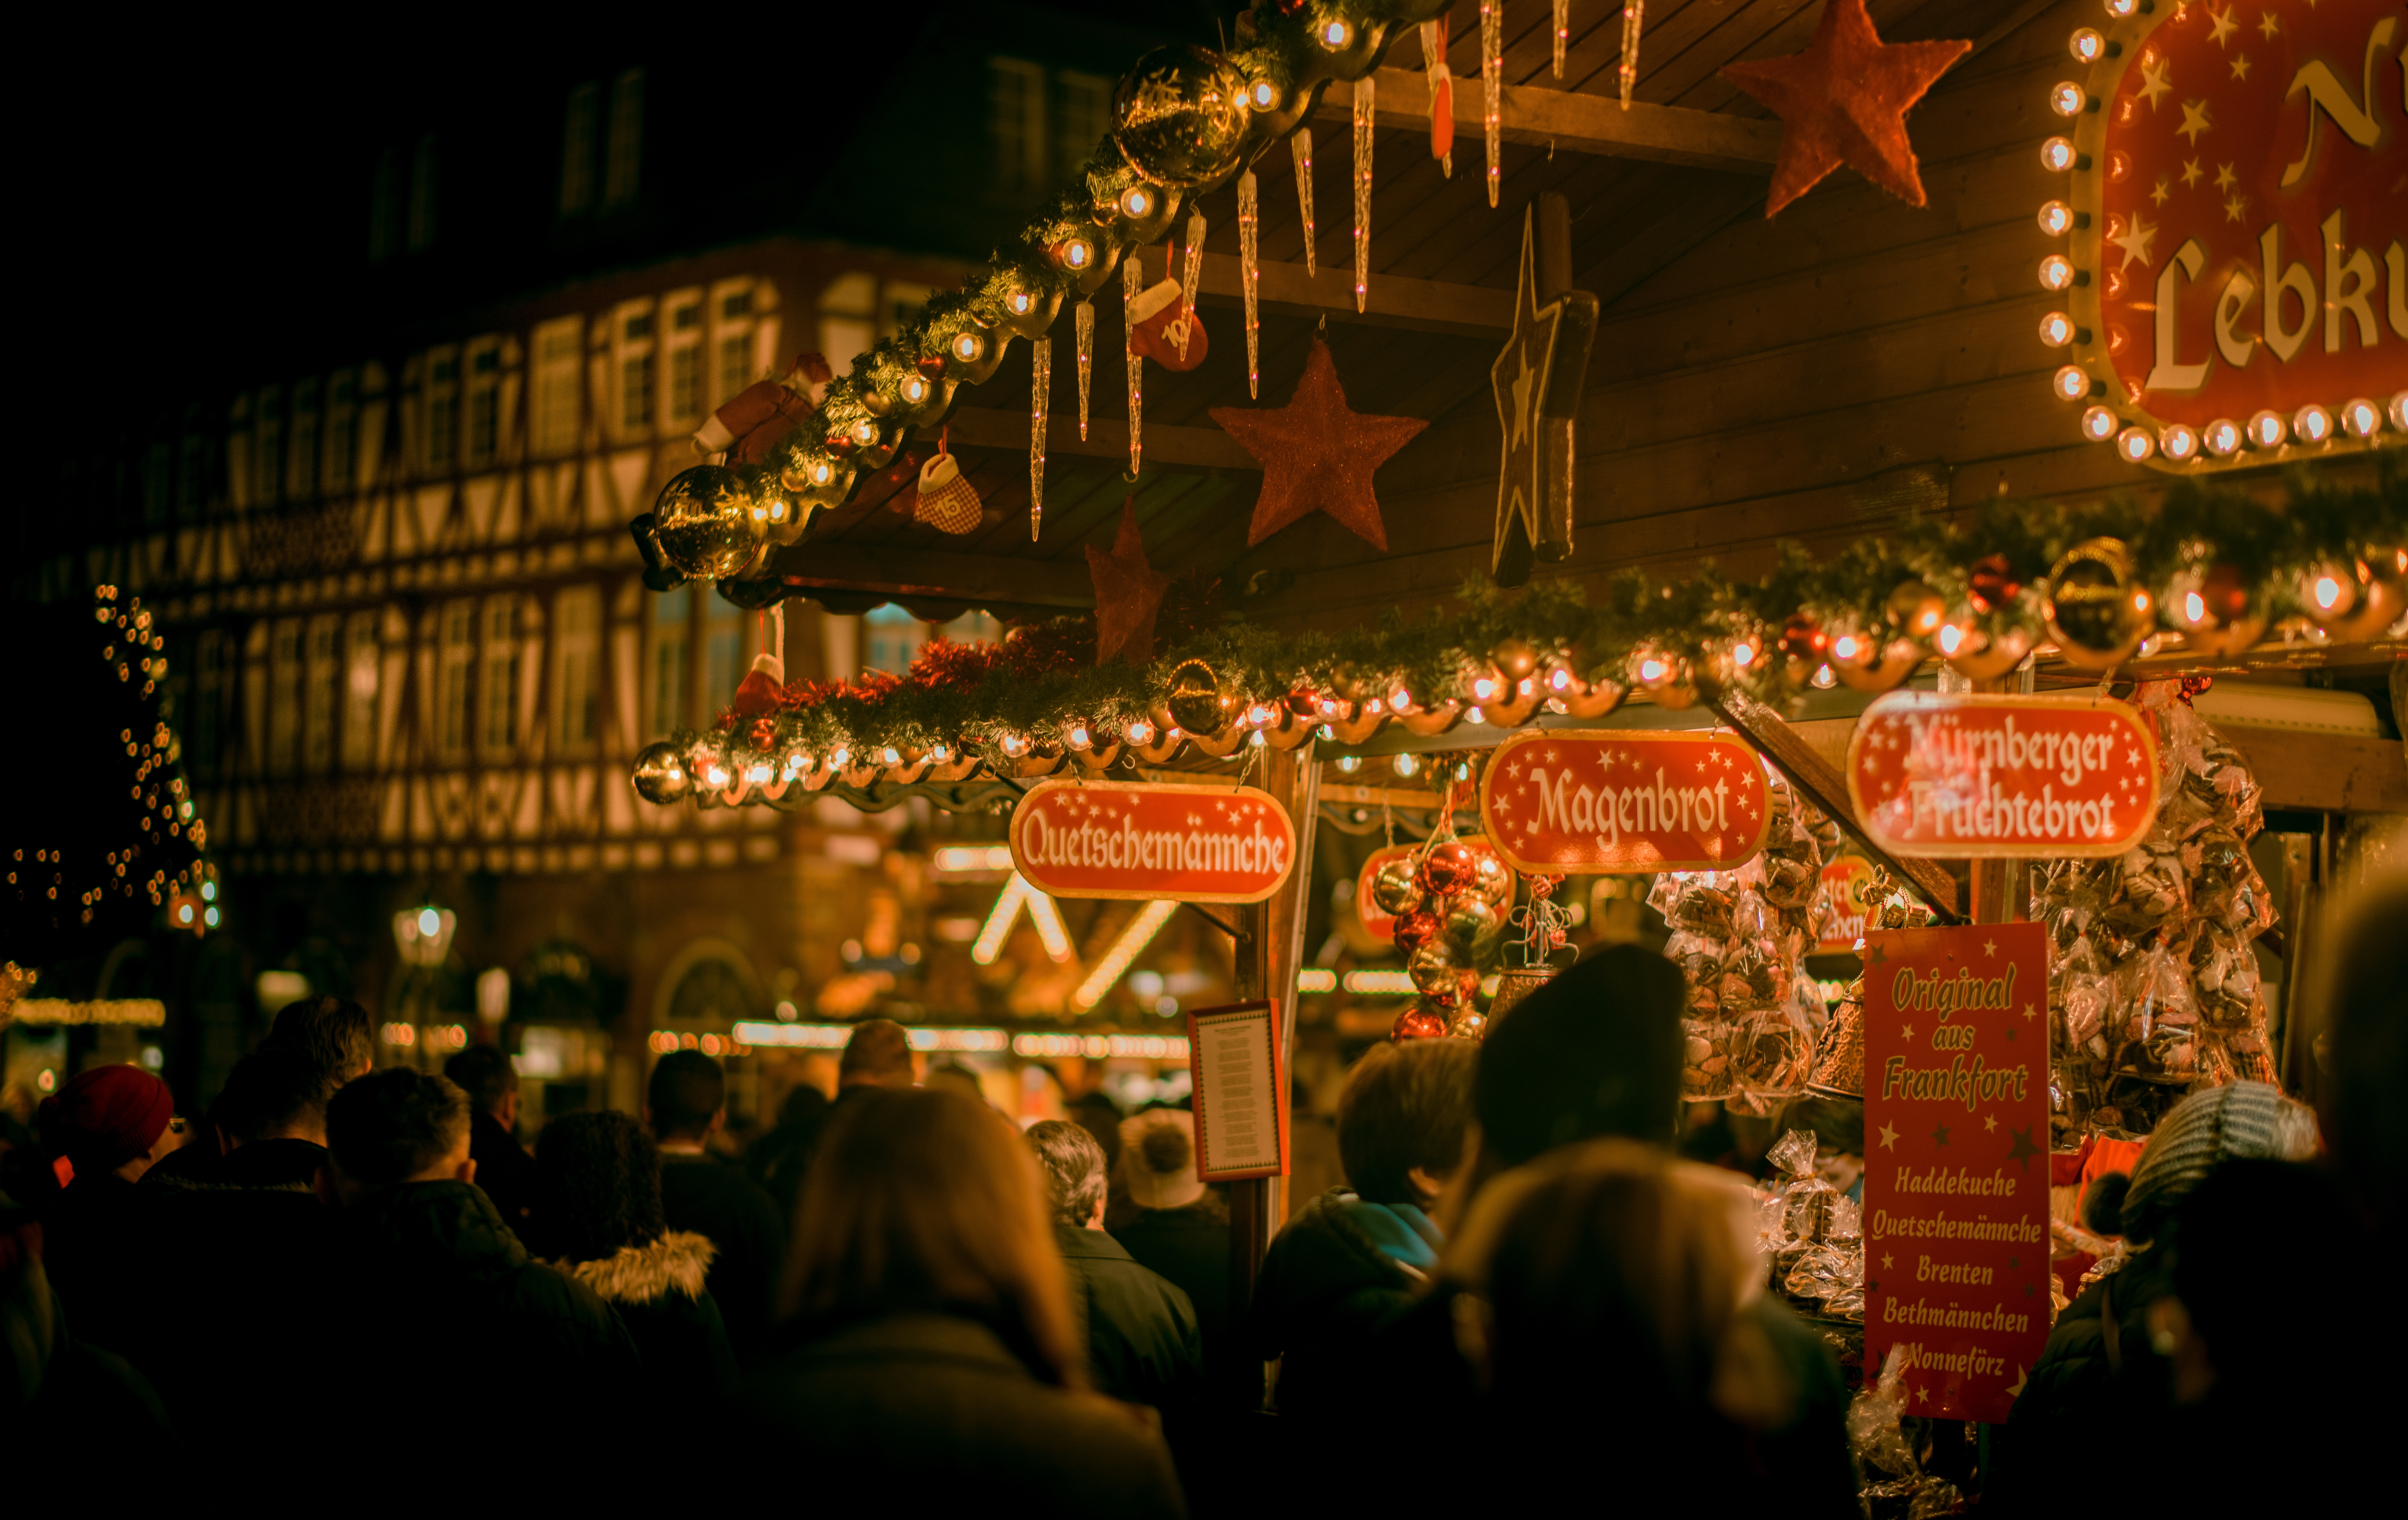 Christmas In The South 2019 PREMIUM Rhine Christmas Markets South 2019 (6 destinations) by A